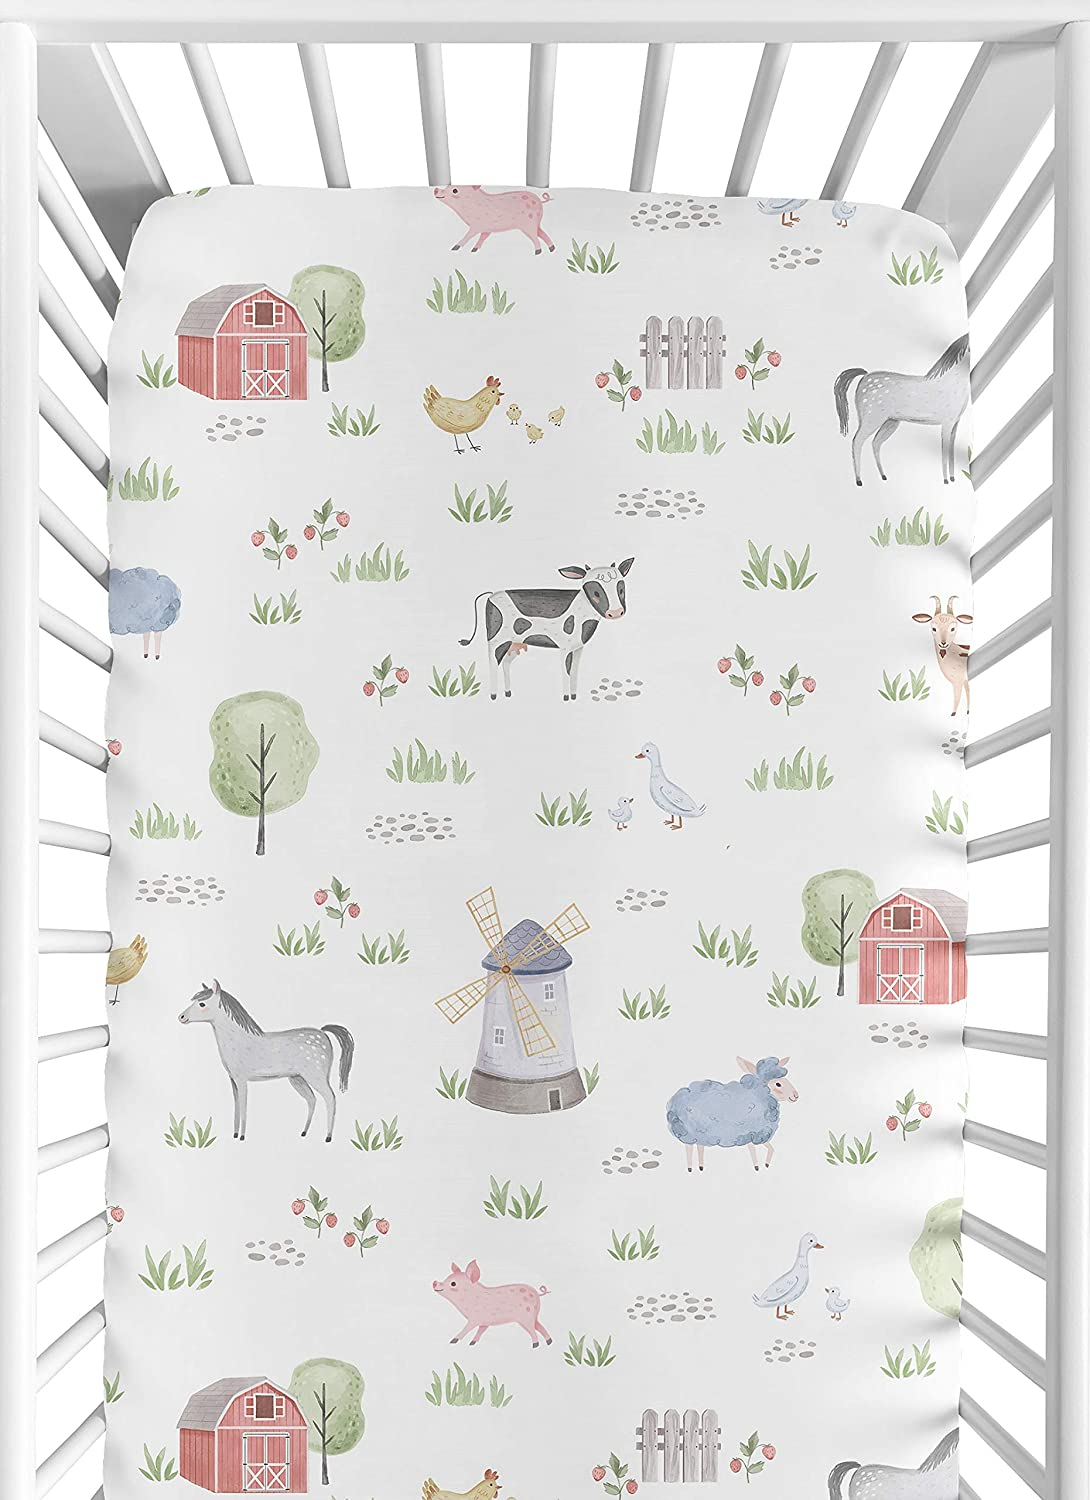 Sweet Jojo Designs Farm Animals Boy or Girl Fitted Crib Sheet Baby or Toddler Bed Nursery - Watercolor Farmhouse Horse Cow Sheep Pig